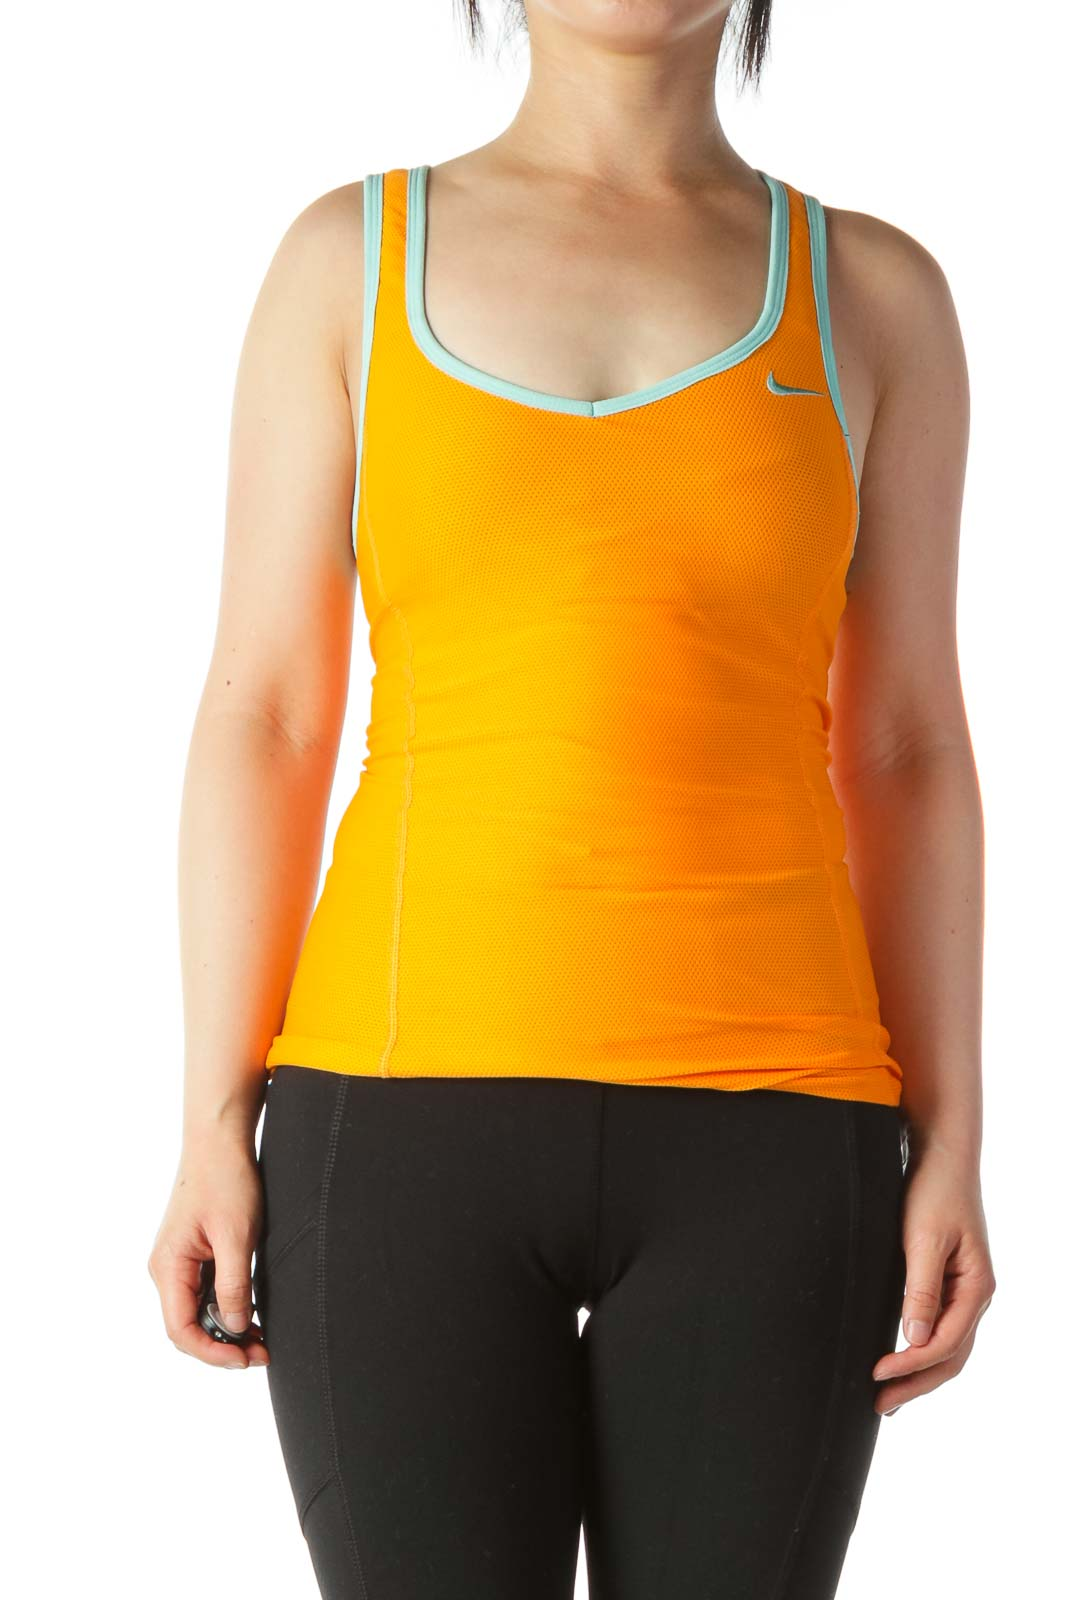 Orange Mint-Green-Trim Racerback Mesh-Body Sport Tank